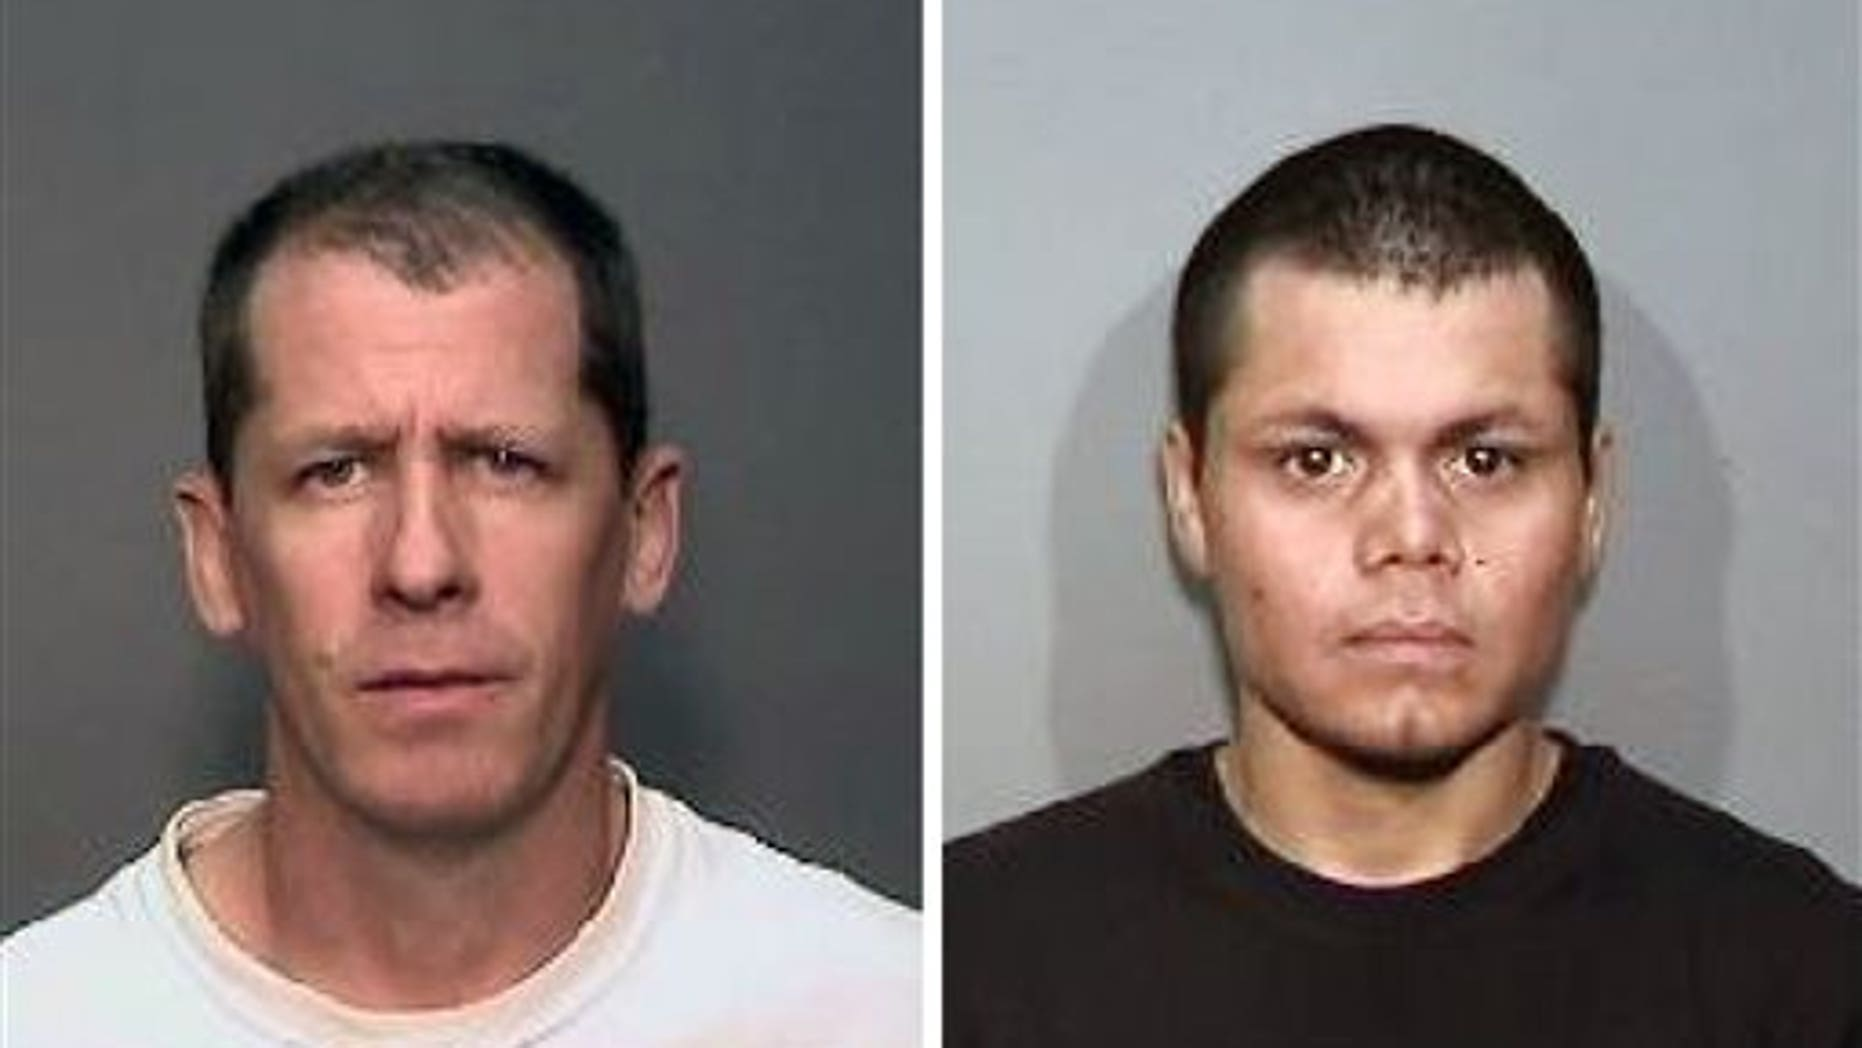 CORRECTS FIRST NAME TO STEVEN-This combination of undated photos from the Megan's Law website shows suspects, Steven Dean Gordon, 45, left, and Franc Cano, 27, who were arrested on Friday, April 11, 2014, on suspicion of killing four women in Orange County, Calif. Anaheim police said detectives in Santa Ana and Anaheim launched a joint investigation after the naked body of Jarrae Nykkole Estepp, 21, was found in the conveyor belt of a recycling plant last month. The probe led detectives to connect the men to her slaying, and the disappearance of three women who frequented a Santa Ana neighborhood known for drug dealing and prostitution. (AP Photo/Megan's Law)